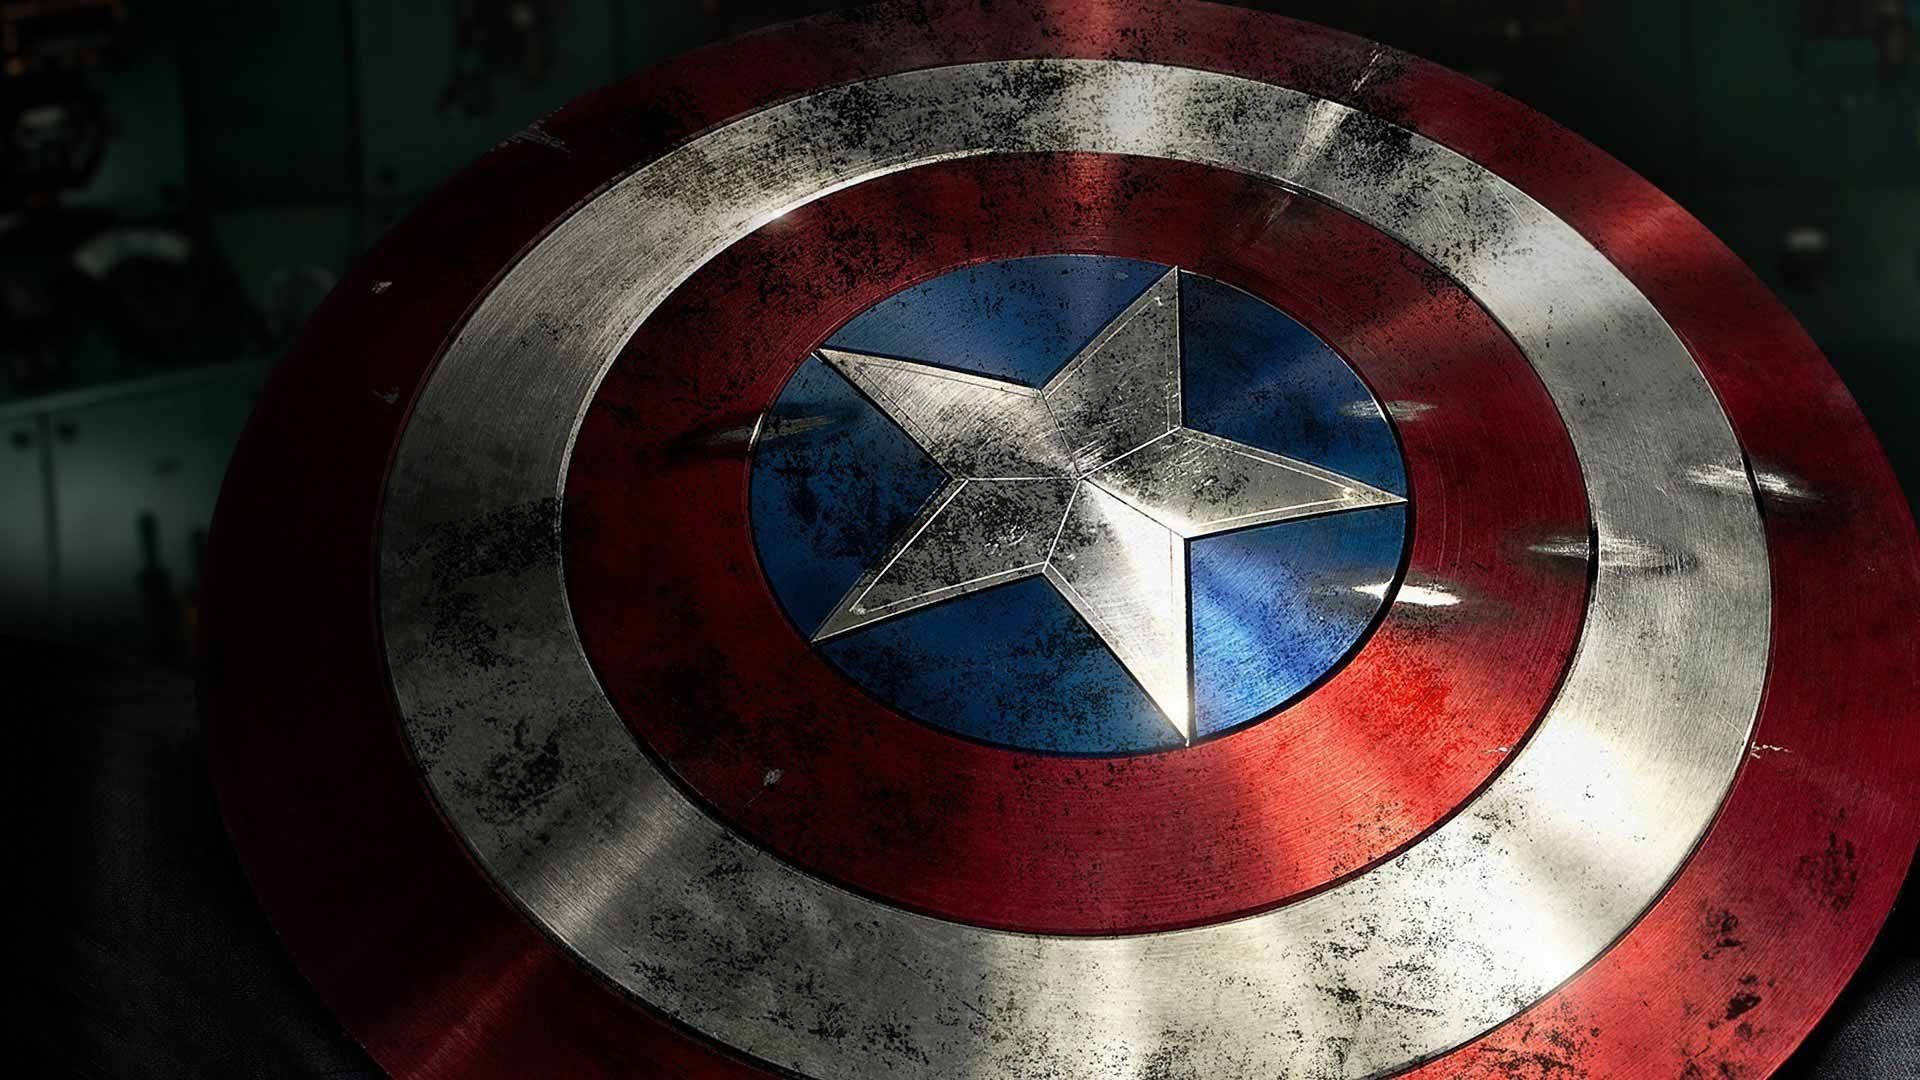 Captian America Wallpaper